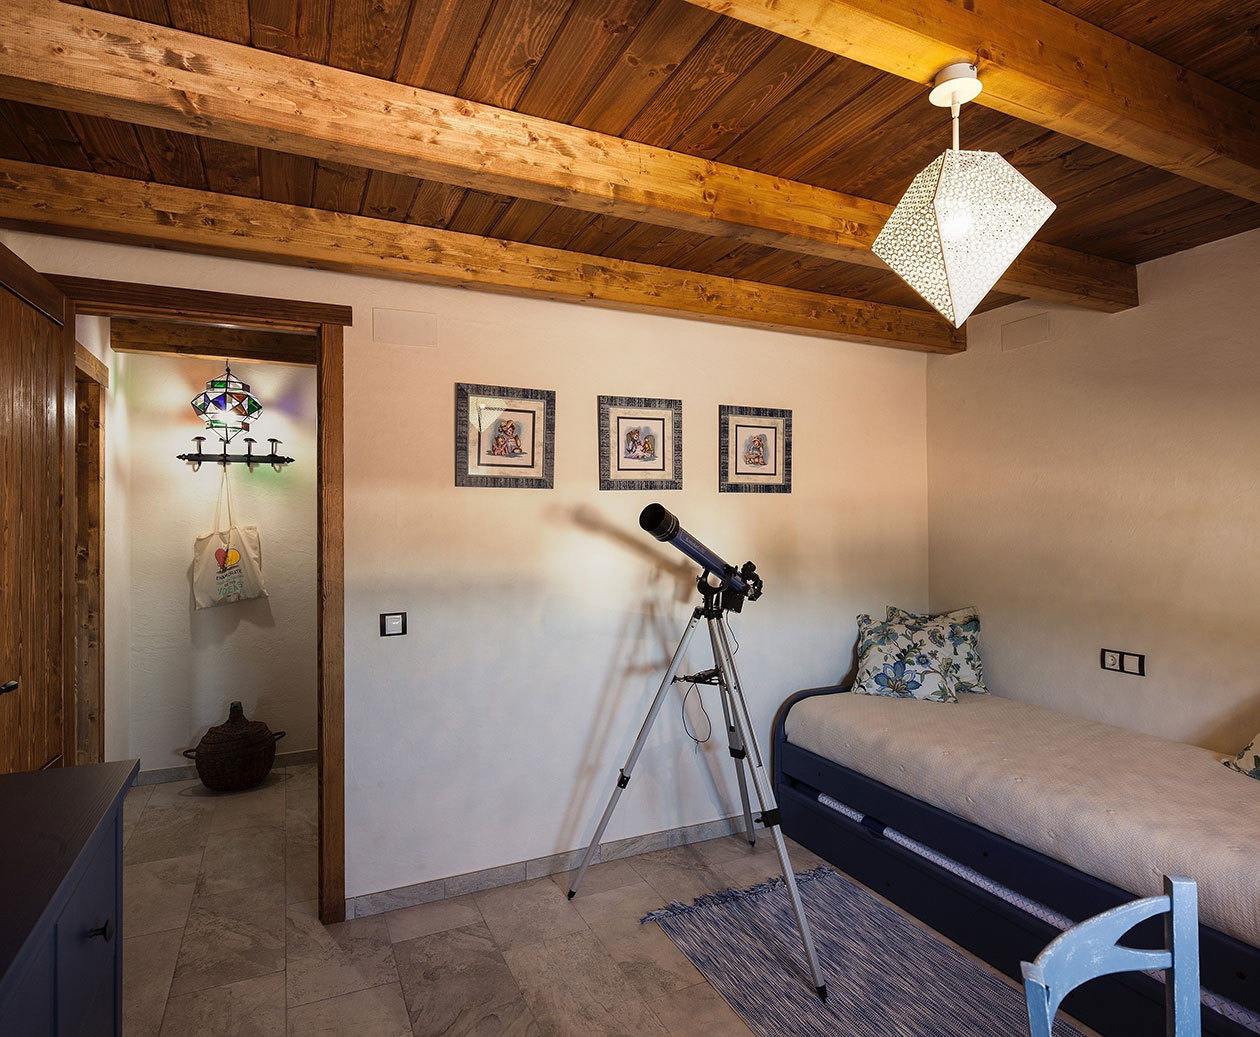 Interior room with telescope, ceiling and wooden access door